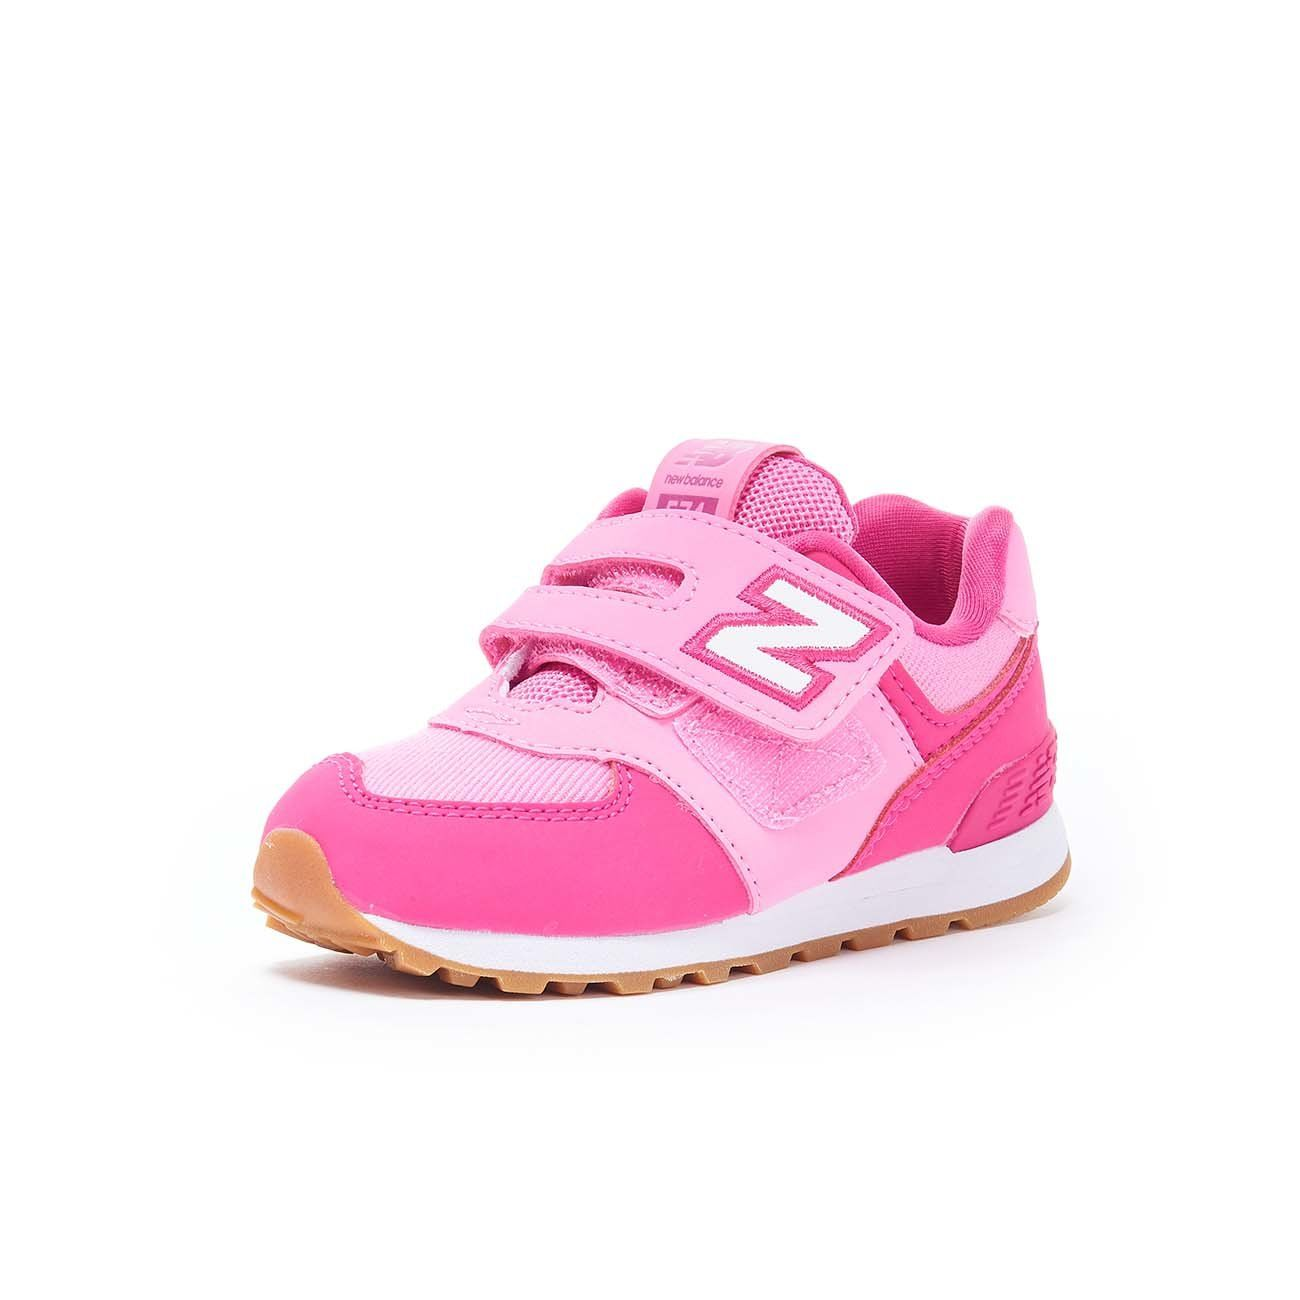 NEW BALANCE SNEAKERS 574 LIFESTYLE SYNTHETIC TEXTILE Bambina Pink ...